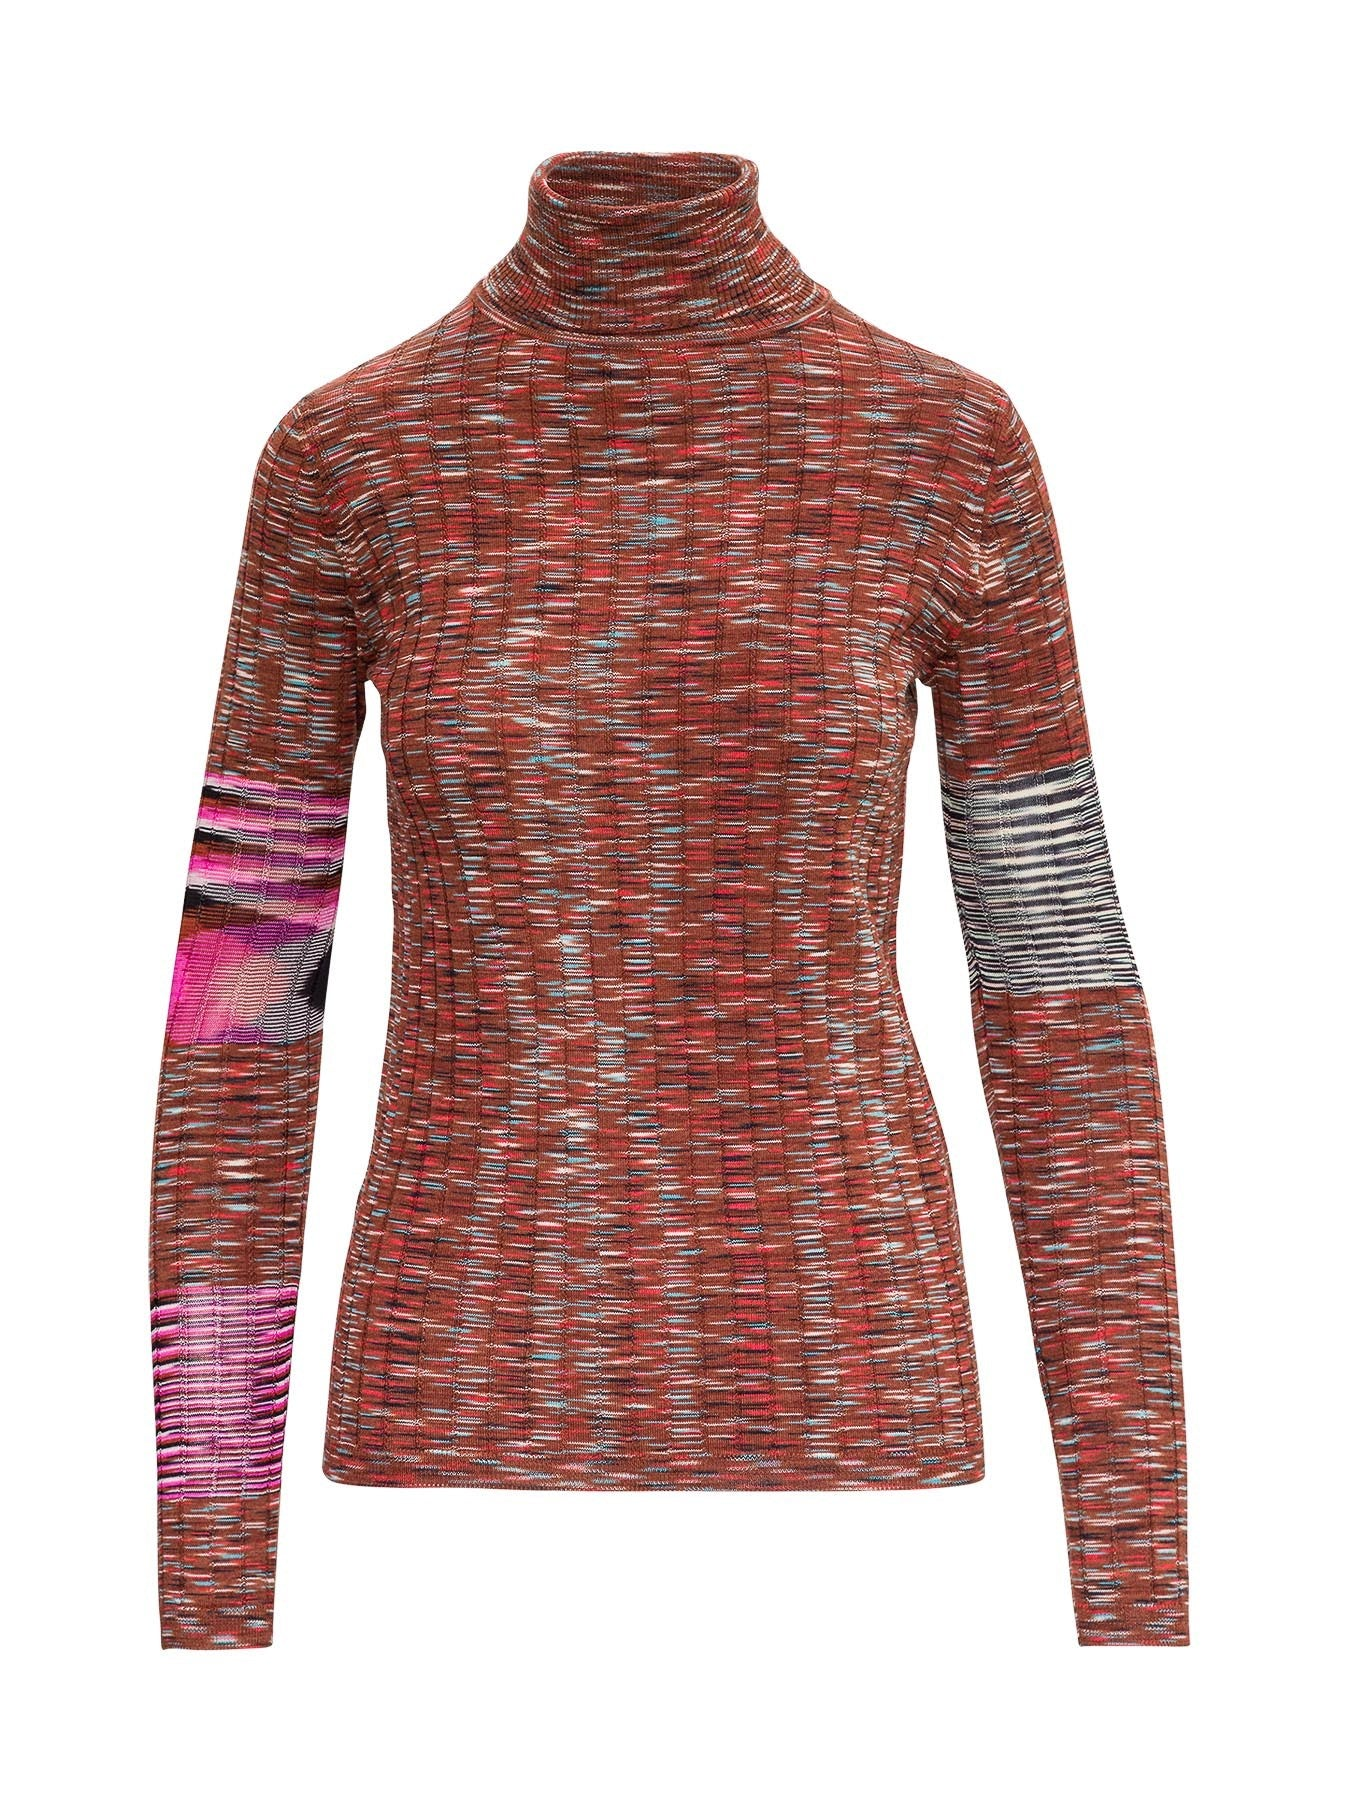 M Missoni M MISSONI CONTRAST PANELS TURTLENECK JUMPER